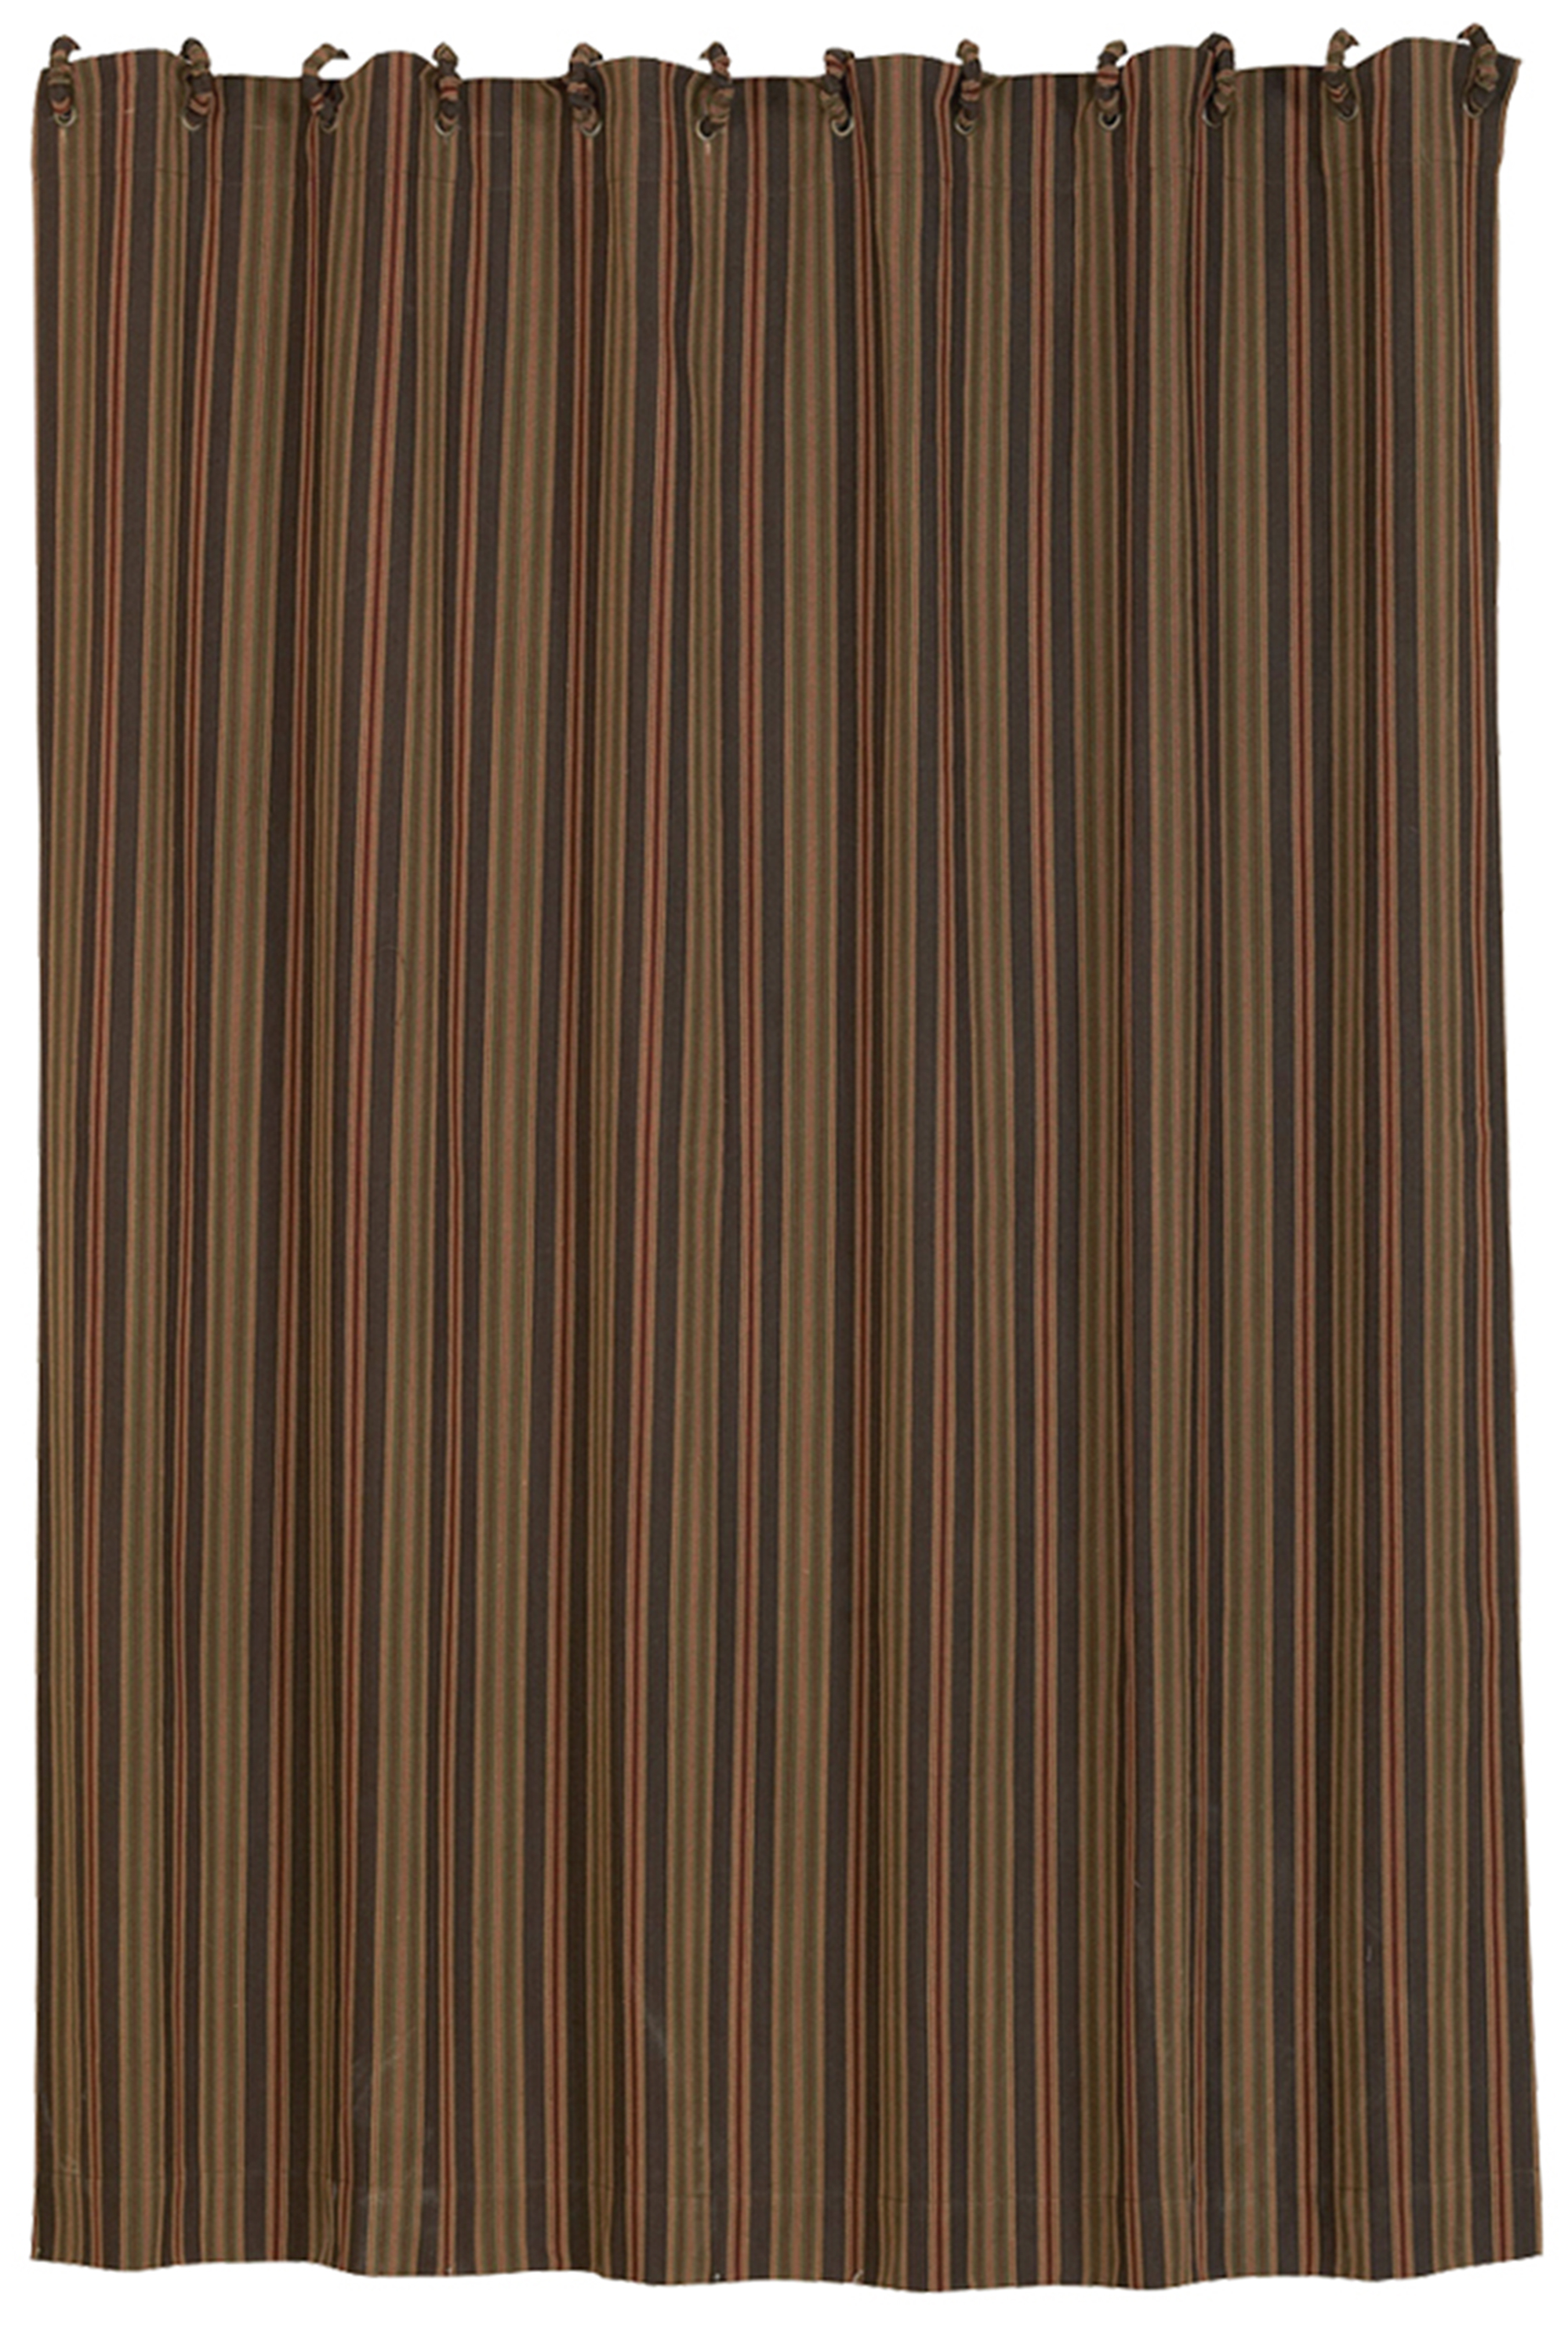 Lg1849sc Striped Shower Curtain Western Bedding By Hiend Accents